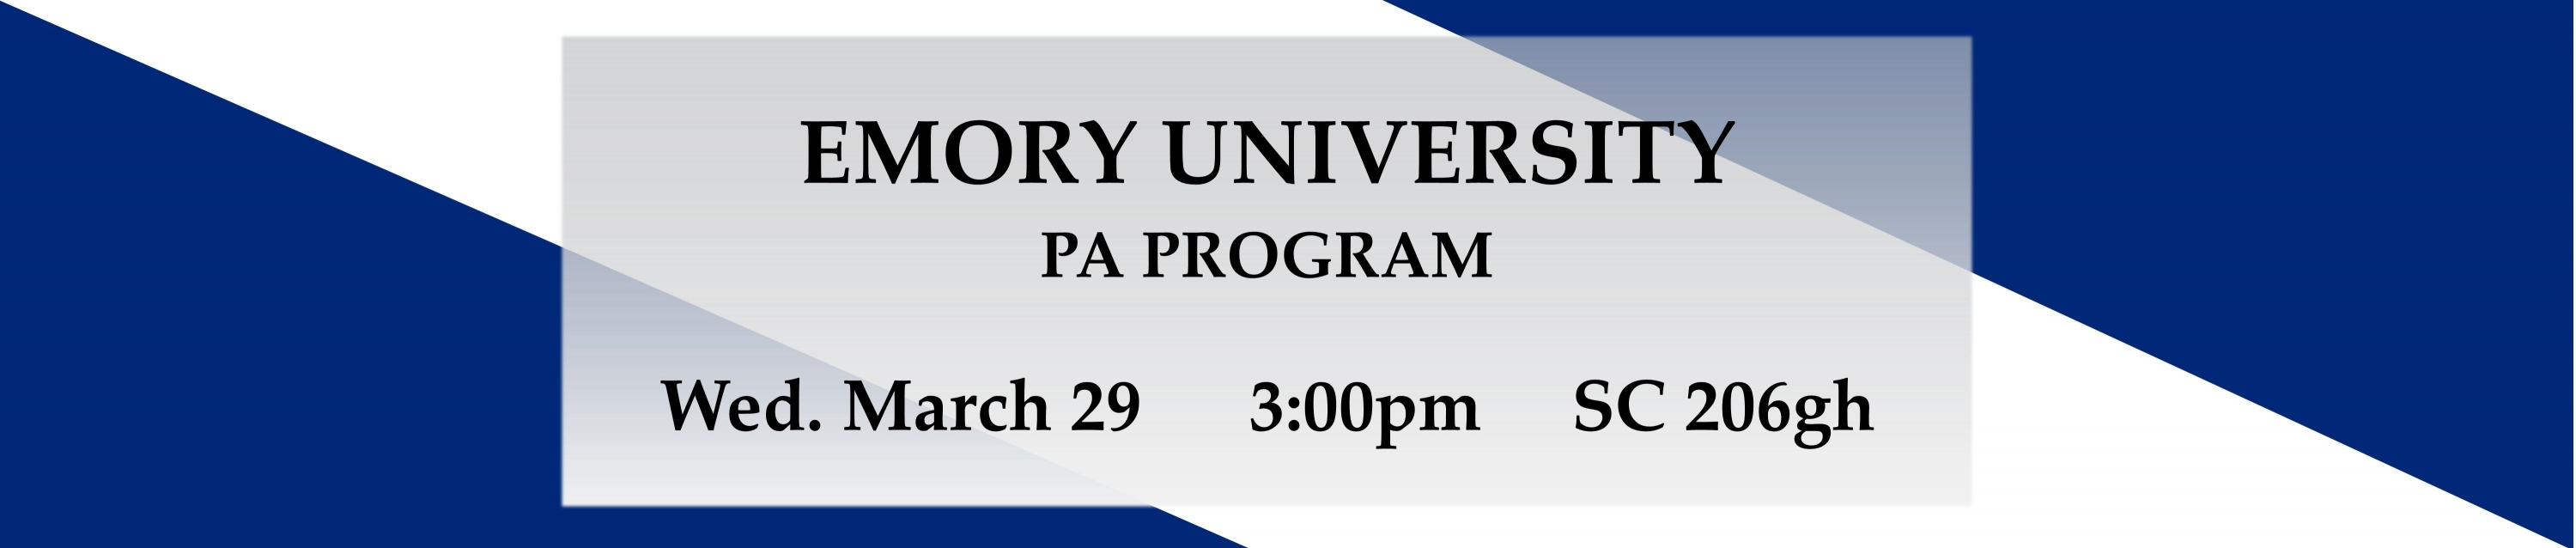 Emory PA March 29